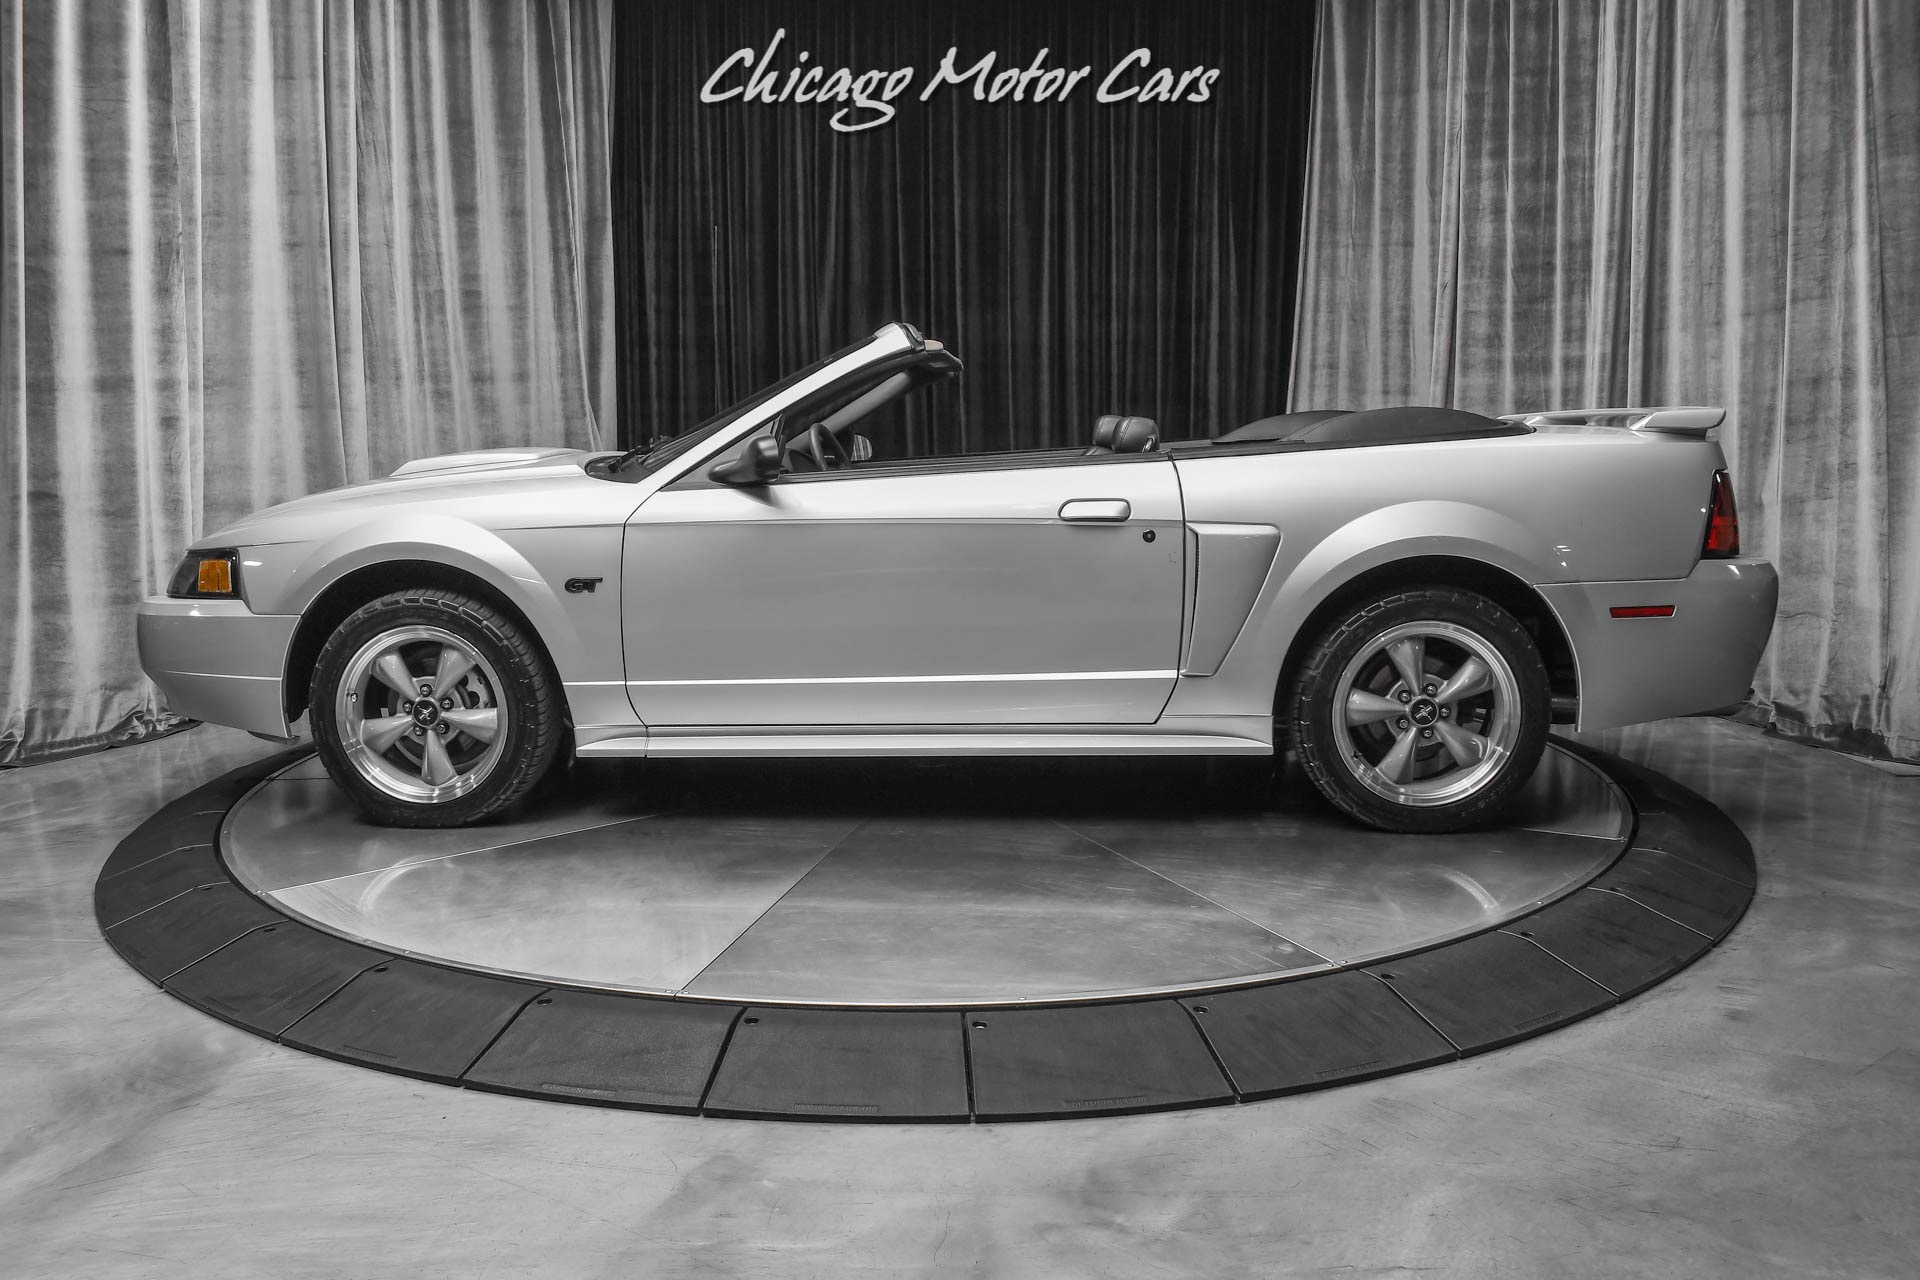 Used-2001-Ford-Mustang-GT-Convertible-ONLY-25K-ORIGINAL-MILES-5-Speed-Manual-ONE-OWNER